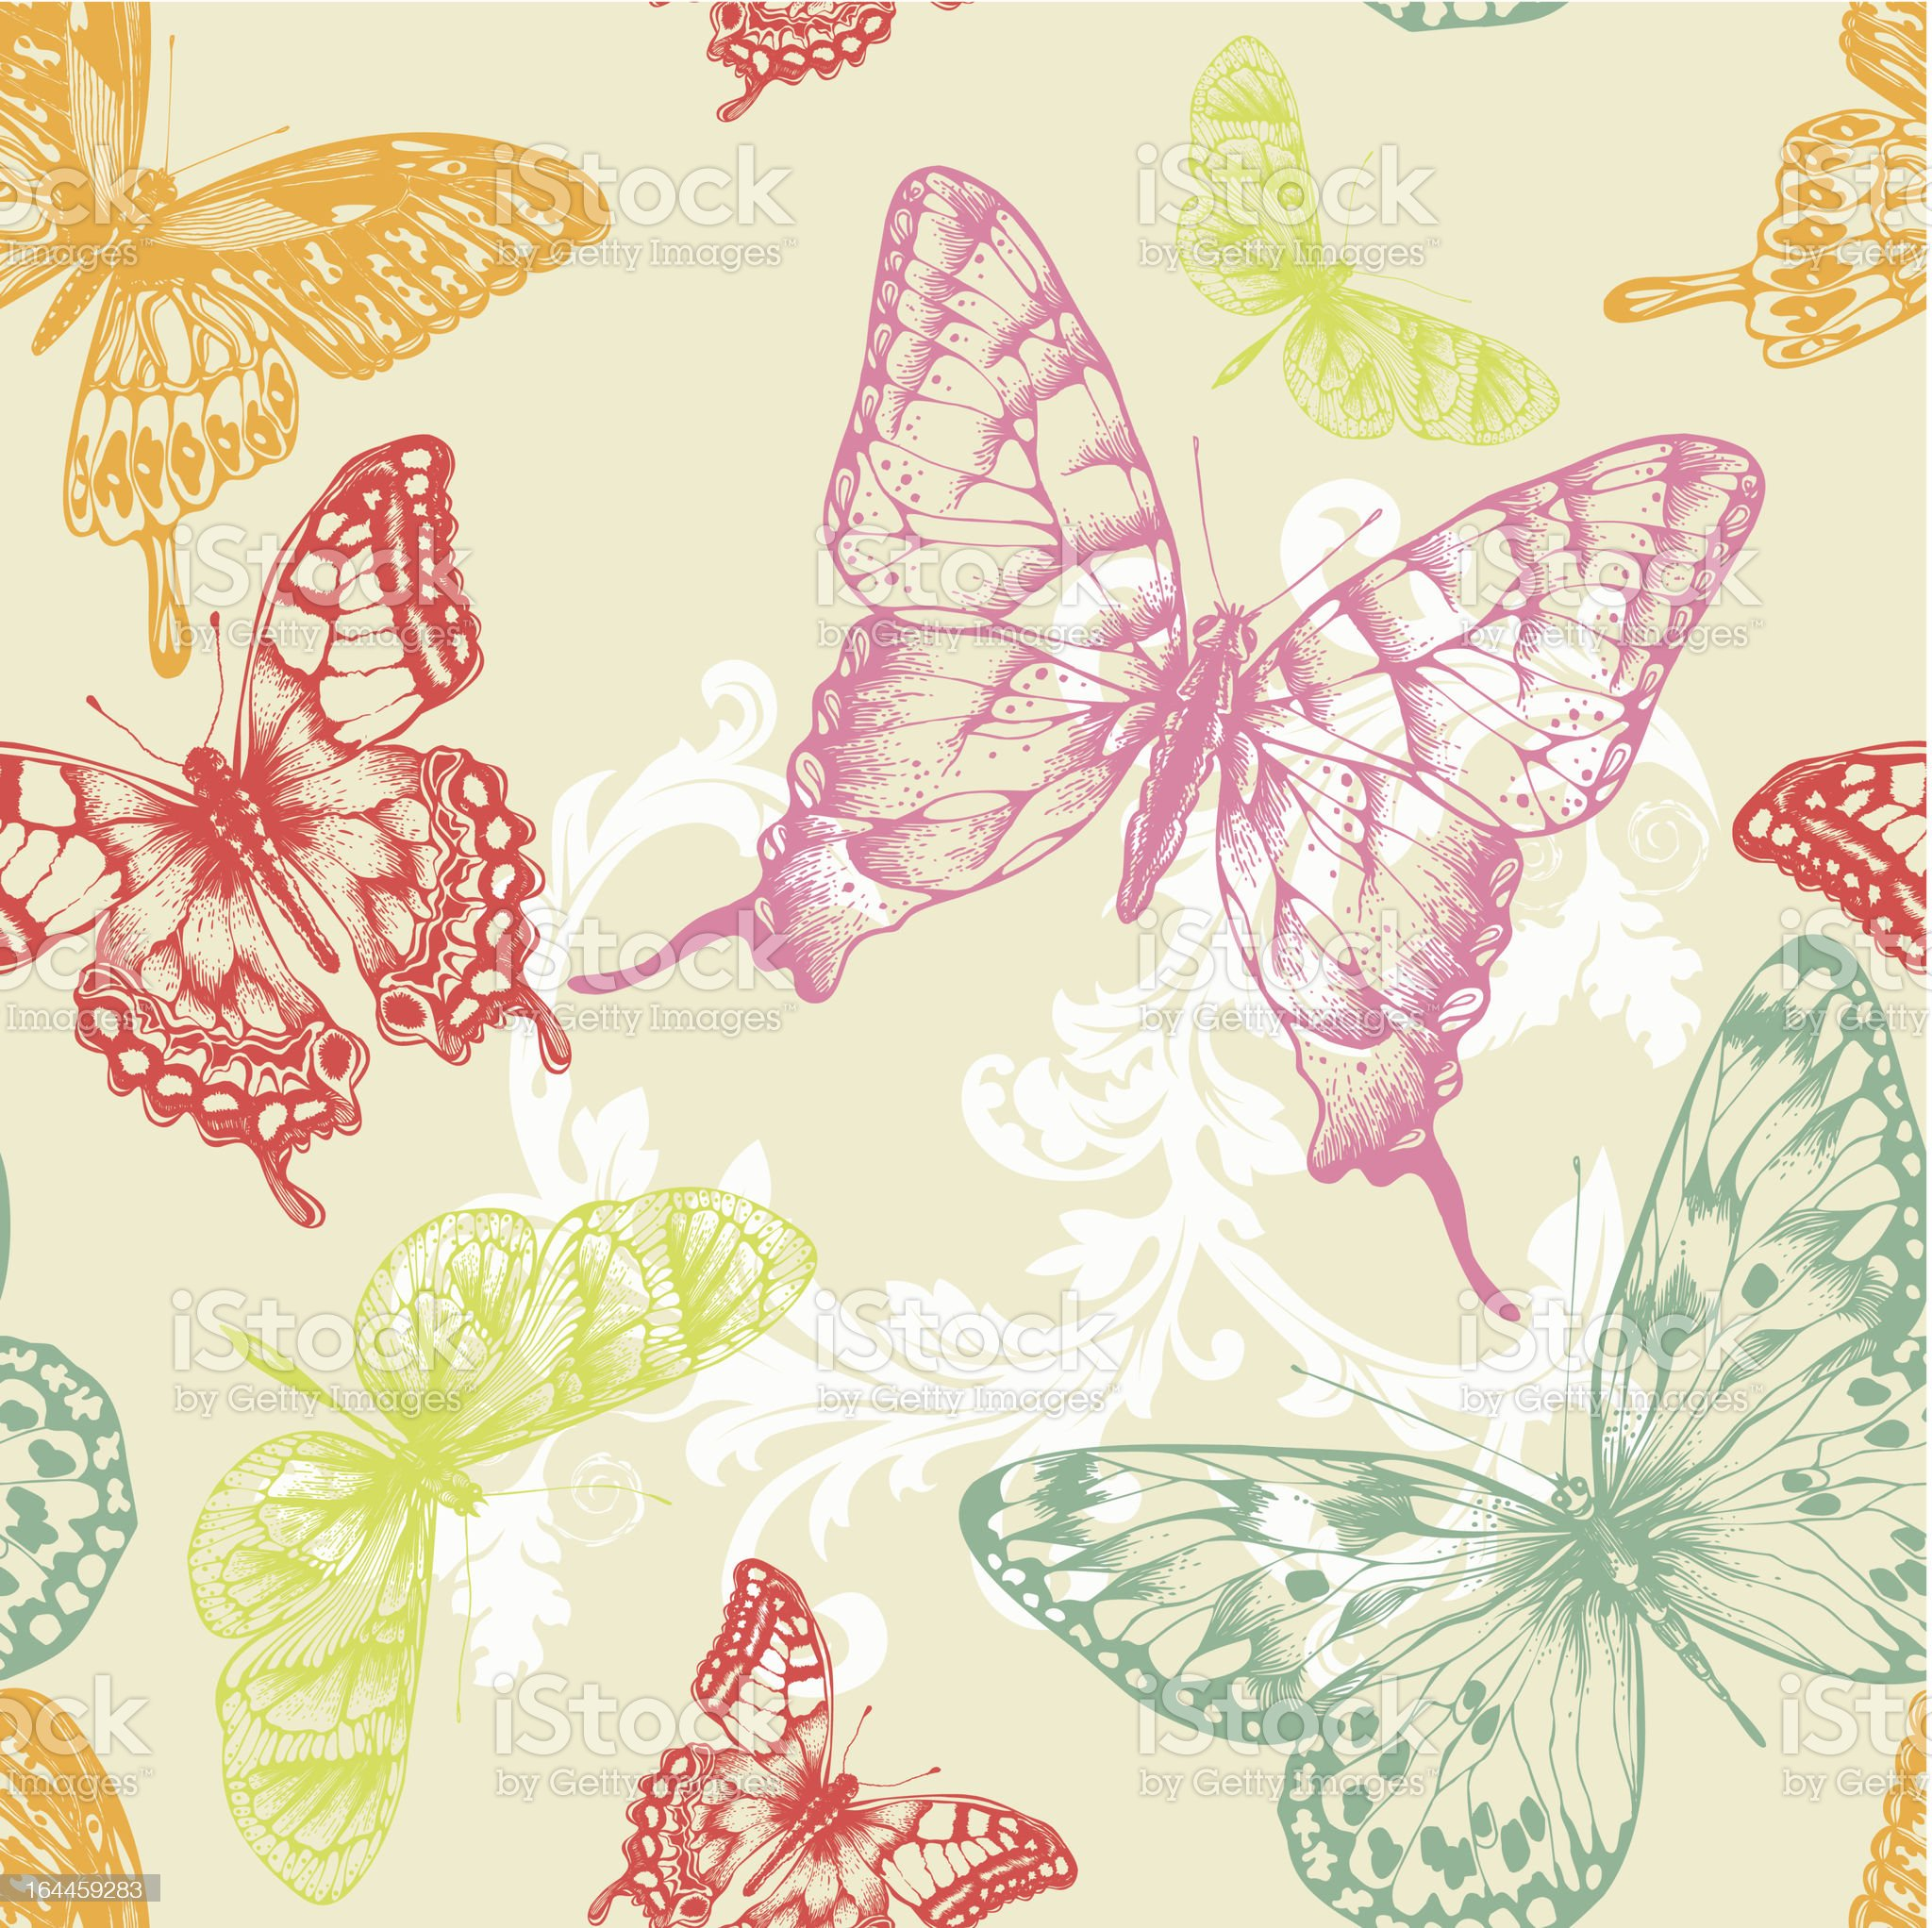 Seamless pattern with flying butterflies, hand-drawing. Vector illustration. royalty-free stock vector art